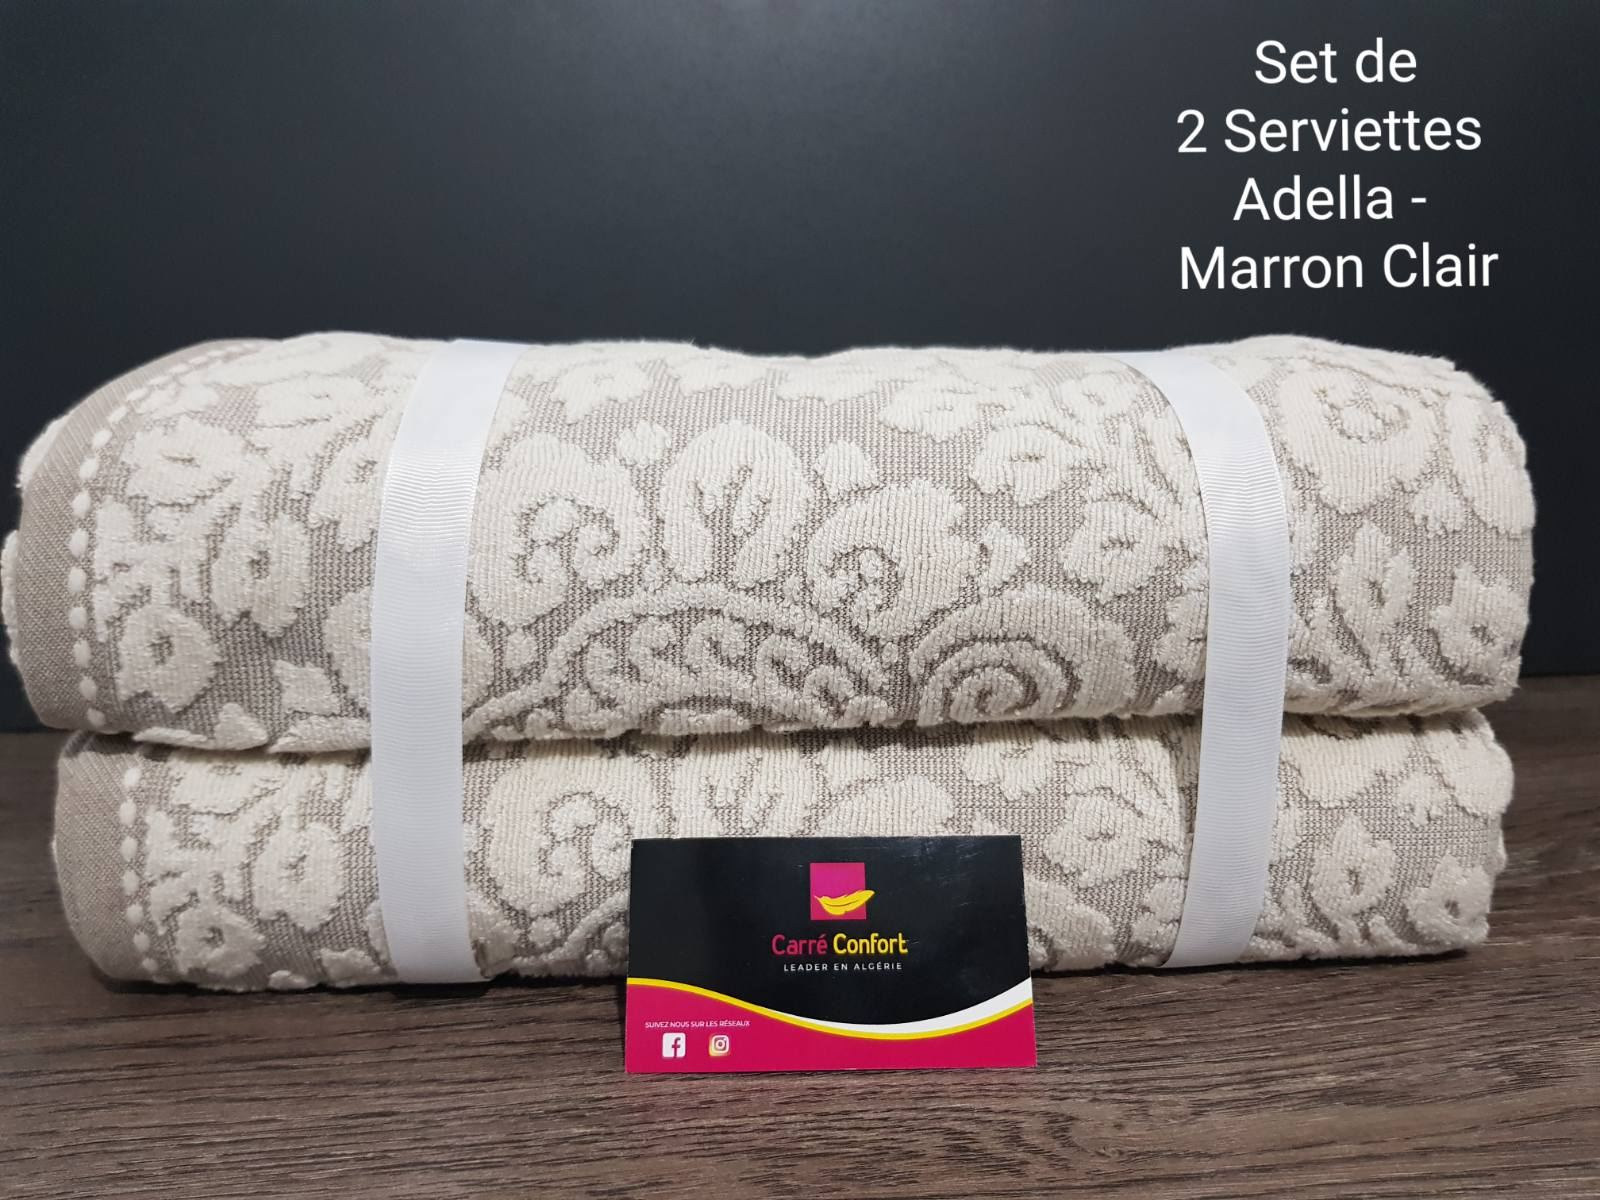 set de serviettes de bain - adella - Marron Clair